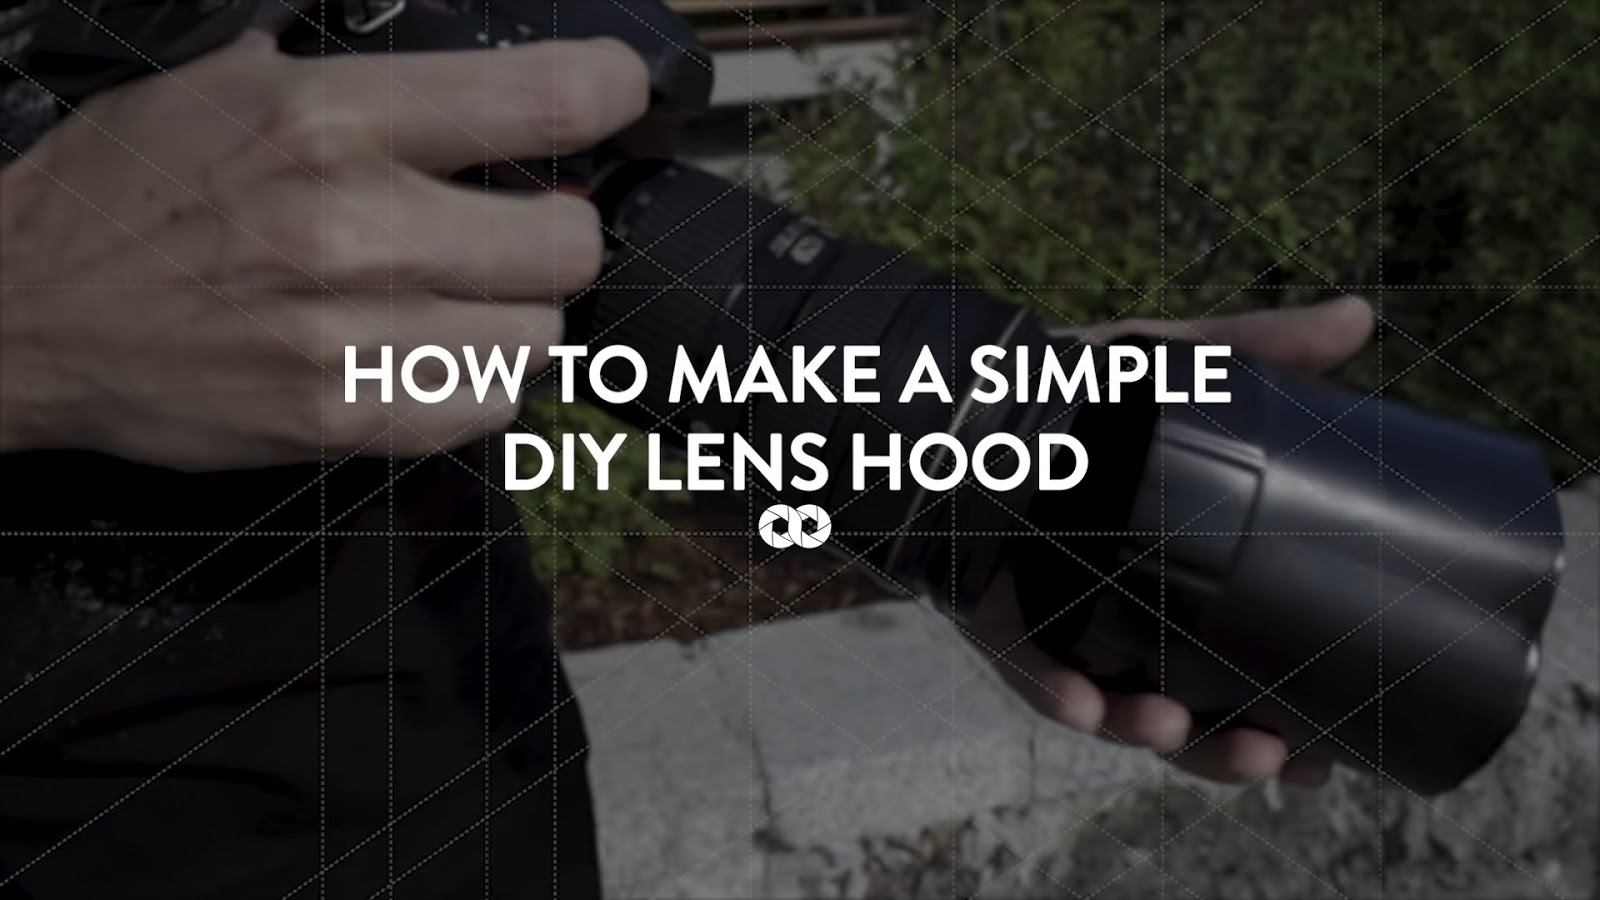 How to make a simple DIY lens hood